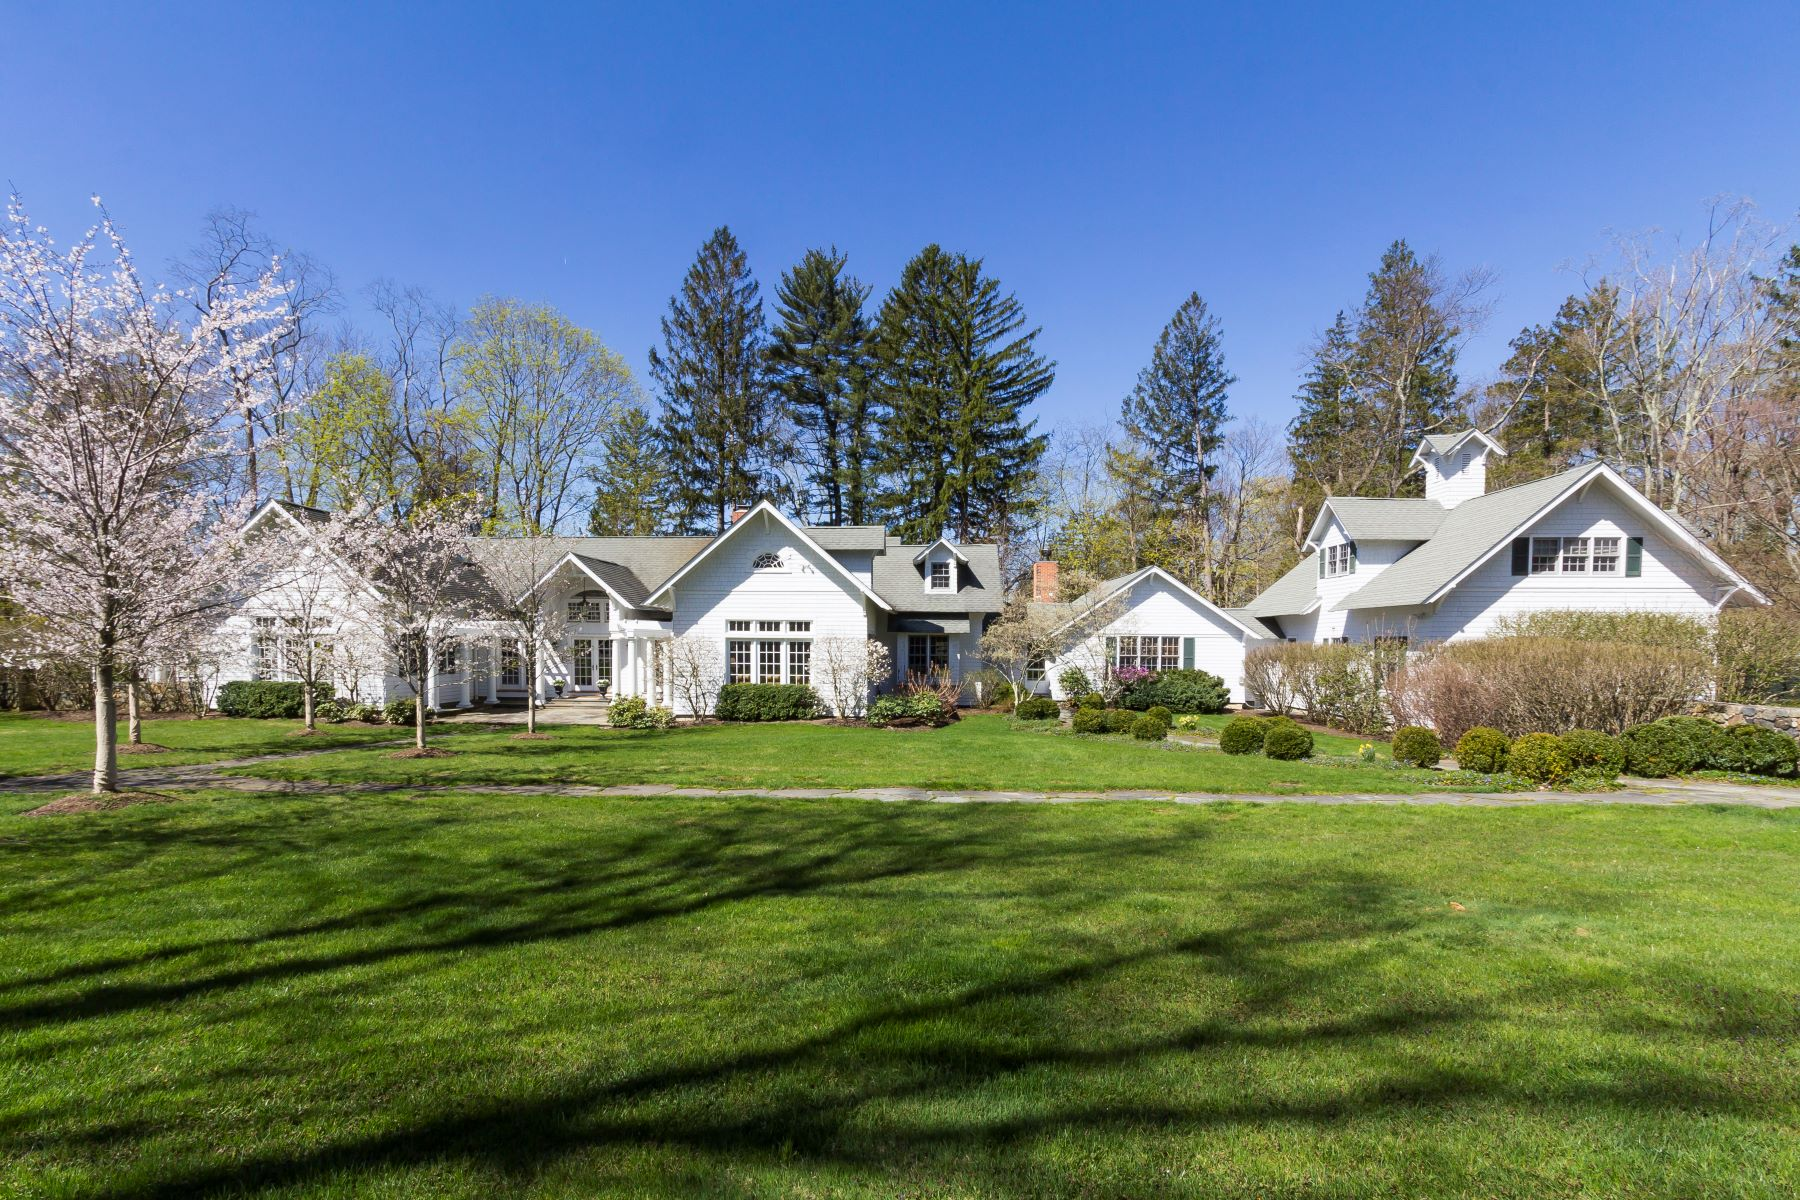 Single Family Home for Sale at Renovated & Expanded 1920's Estate 41 Peaceable Street Ridgefield, Connecticut 06877 United States